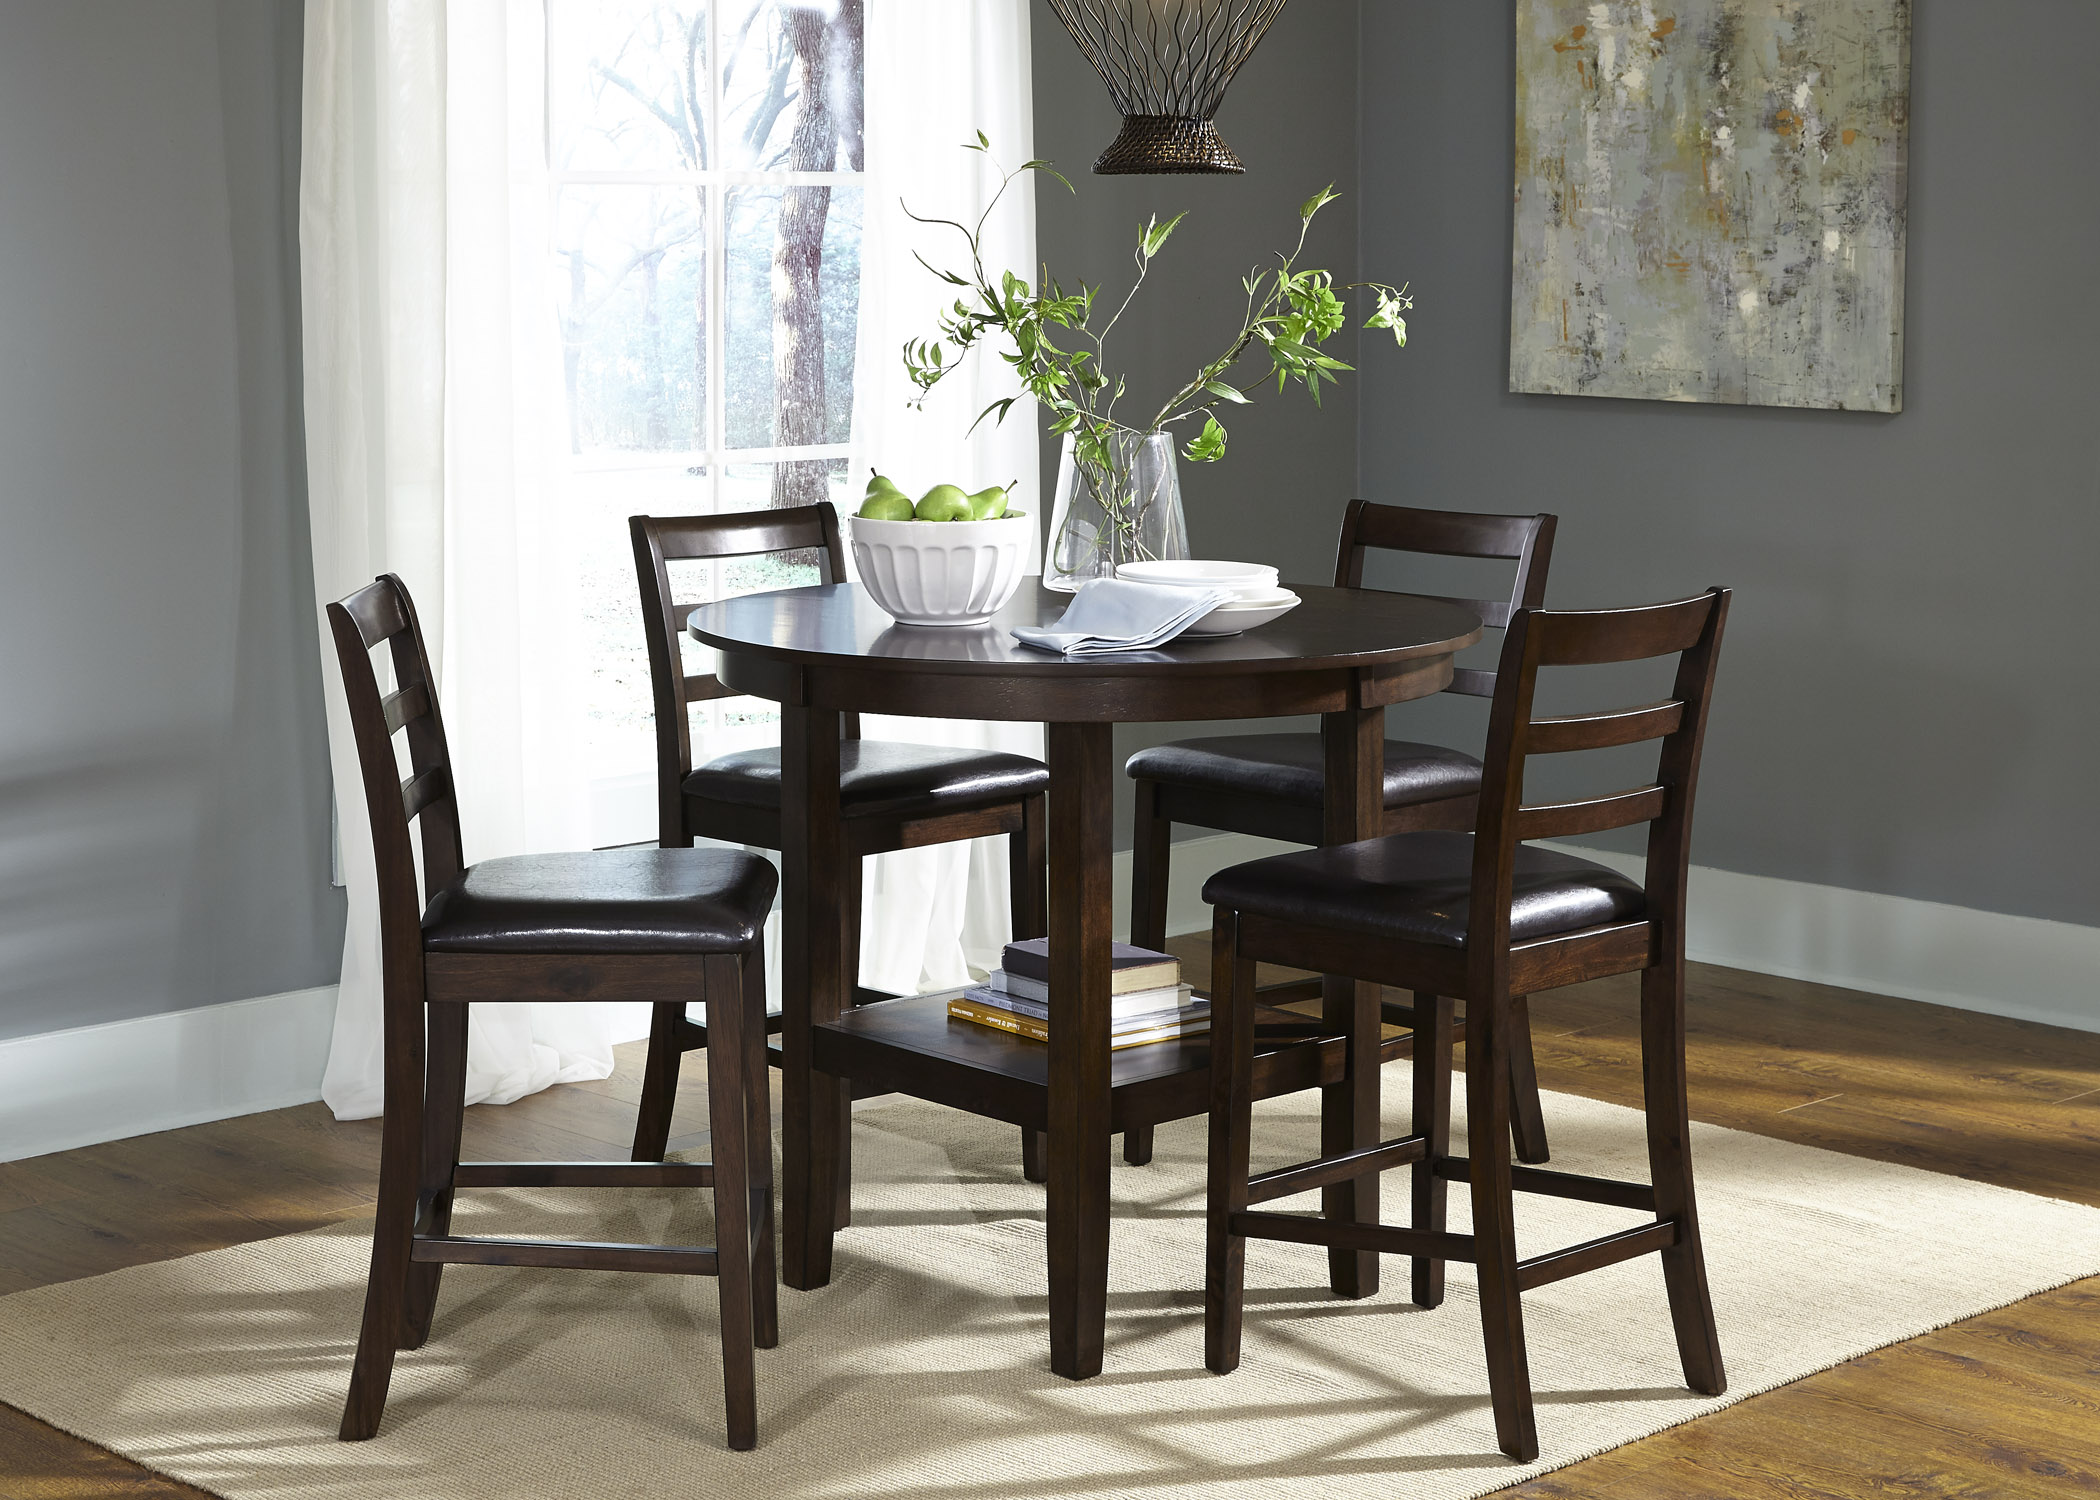 Liberty Furniture Bradshaw Casual Dining 5 Piece Pub Table Set - Item Number 32- & Liberty Furniture Bradshaw Casual Dining 5 Piece Round Pub Table and ...